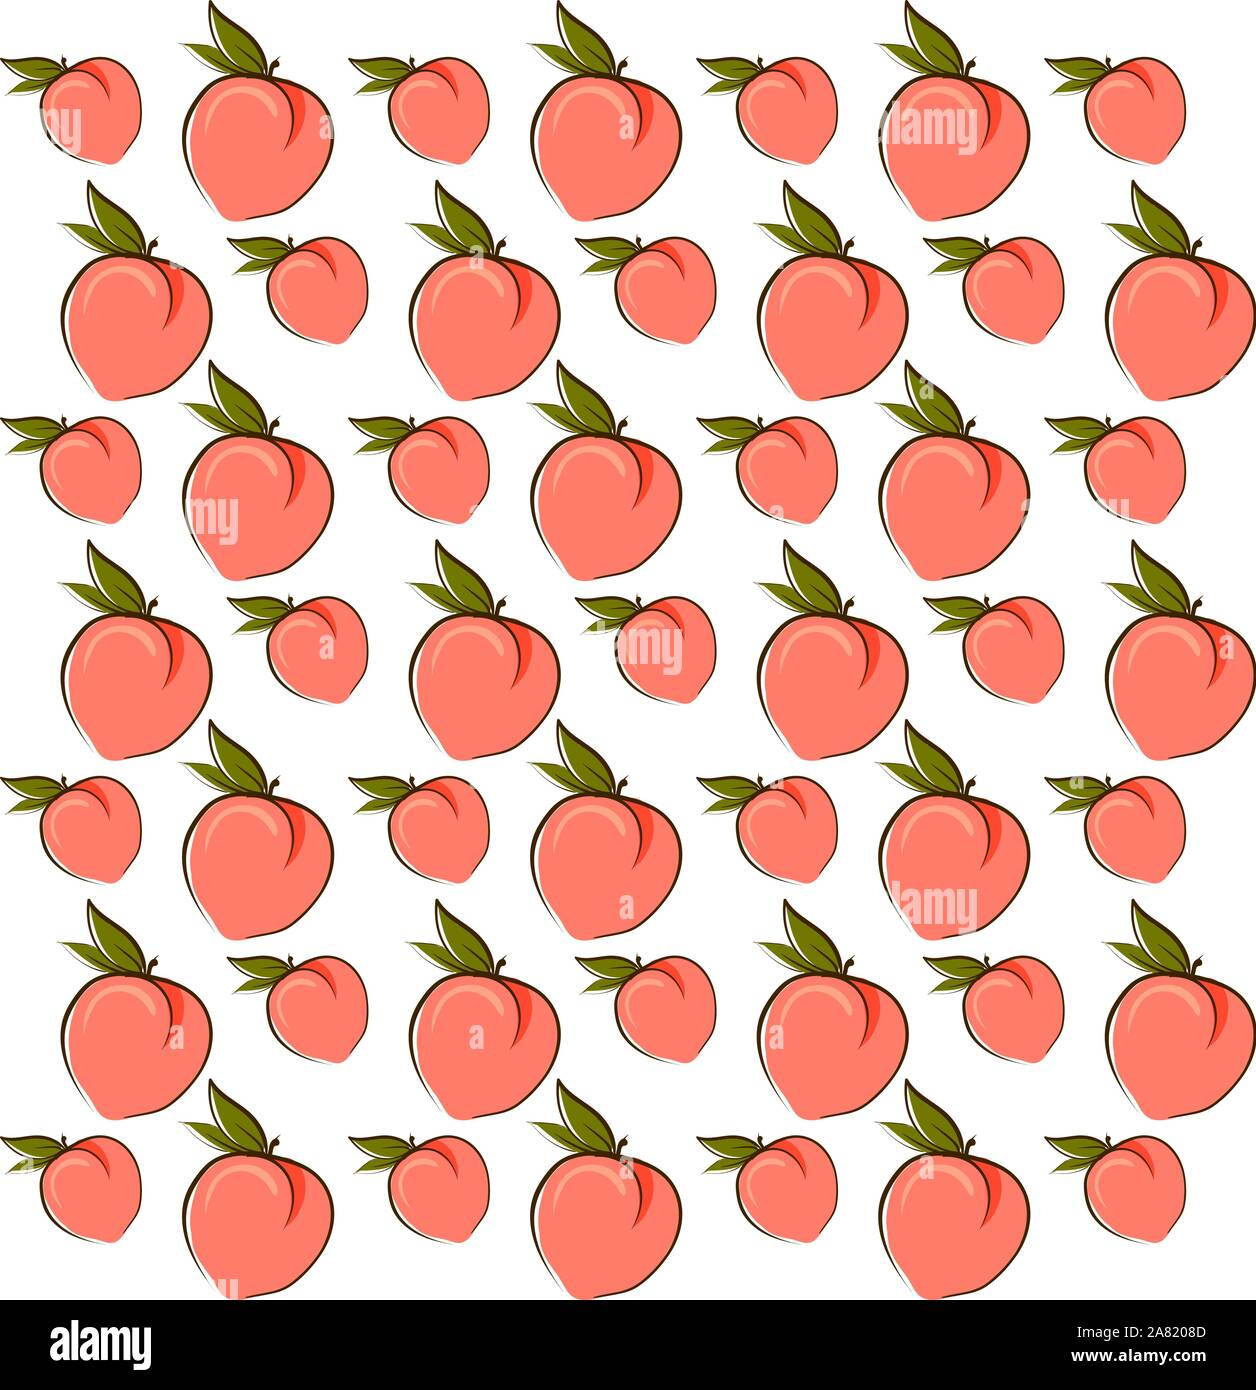 peach wallpaper illustration vector on white background stock vector image art alamy https www alamy com peach wallpaper illustration vector on white background image331958381 html